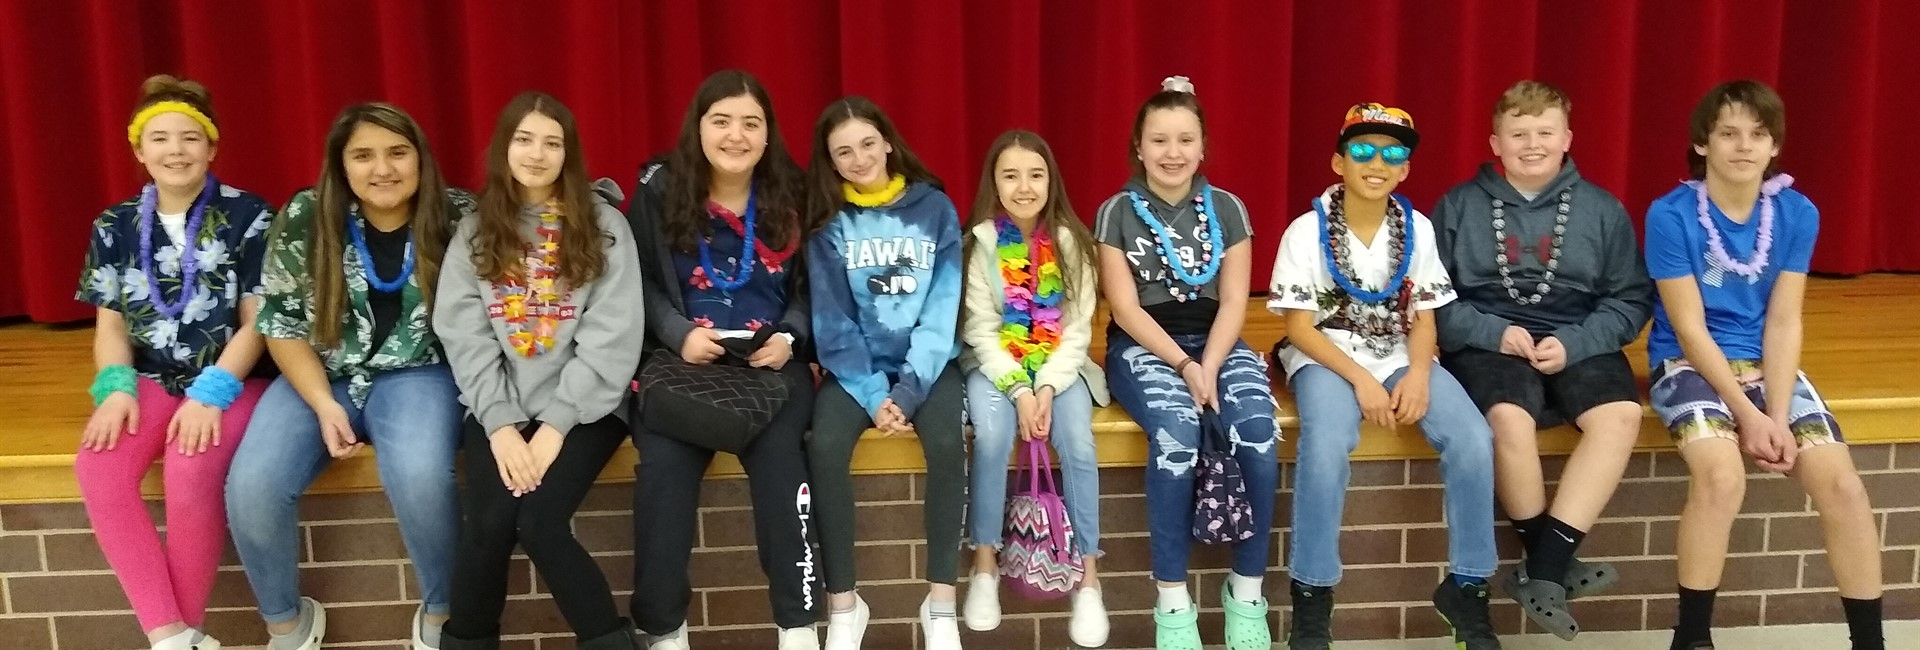 KVMS Hawaiian Day 2020